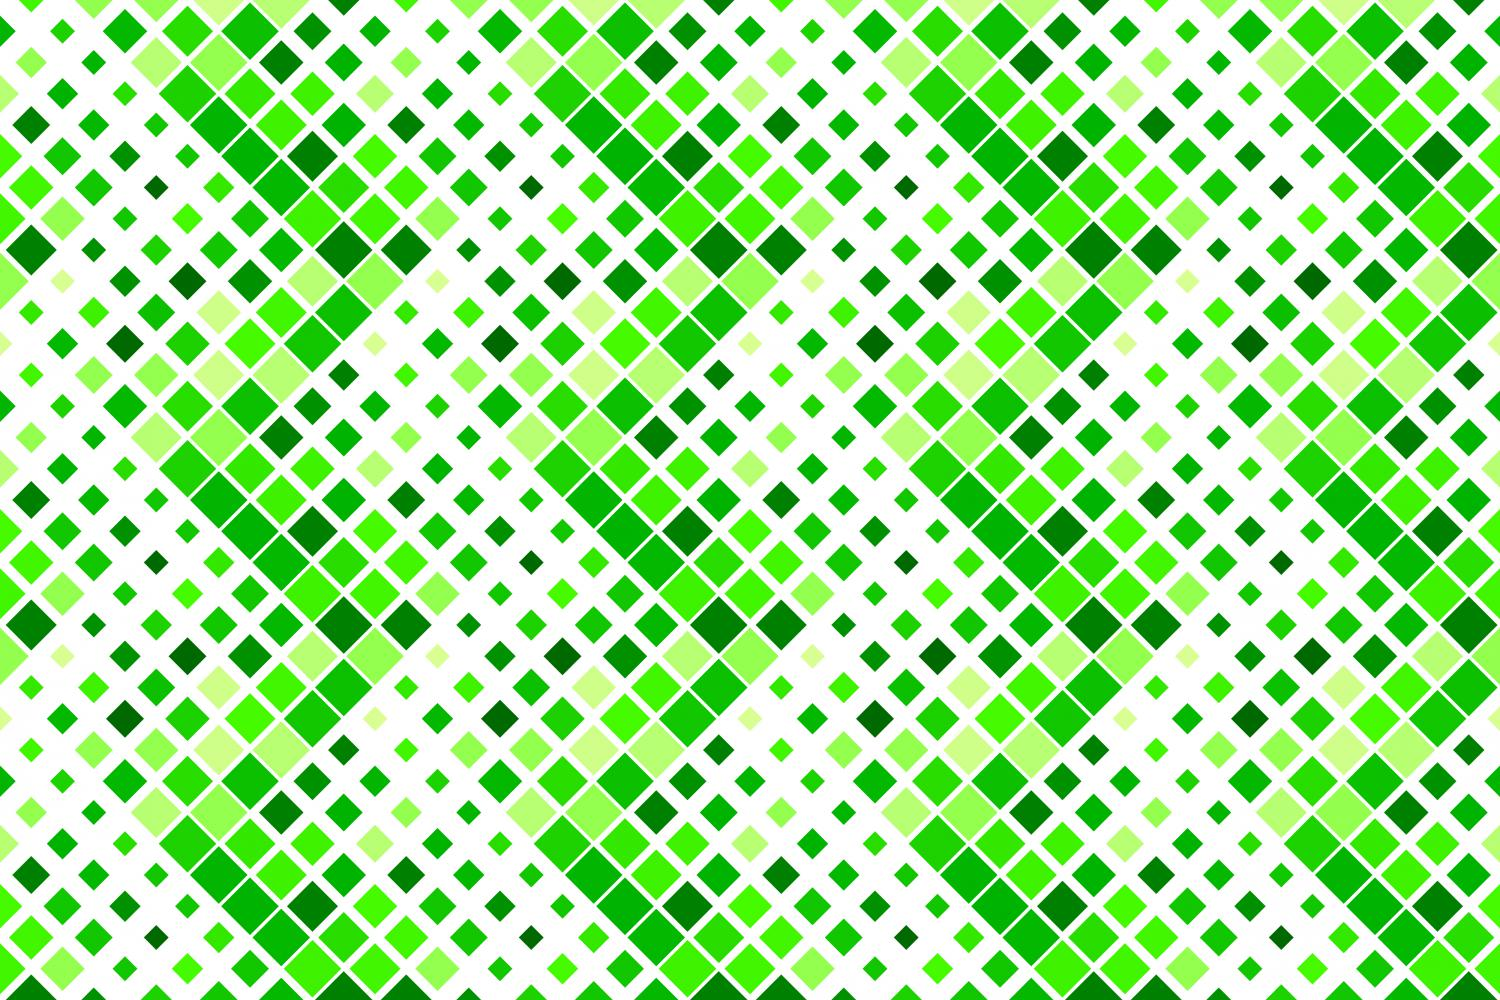 24 Seamless Green Square Patterns example image 4